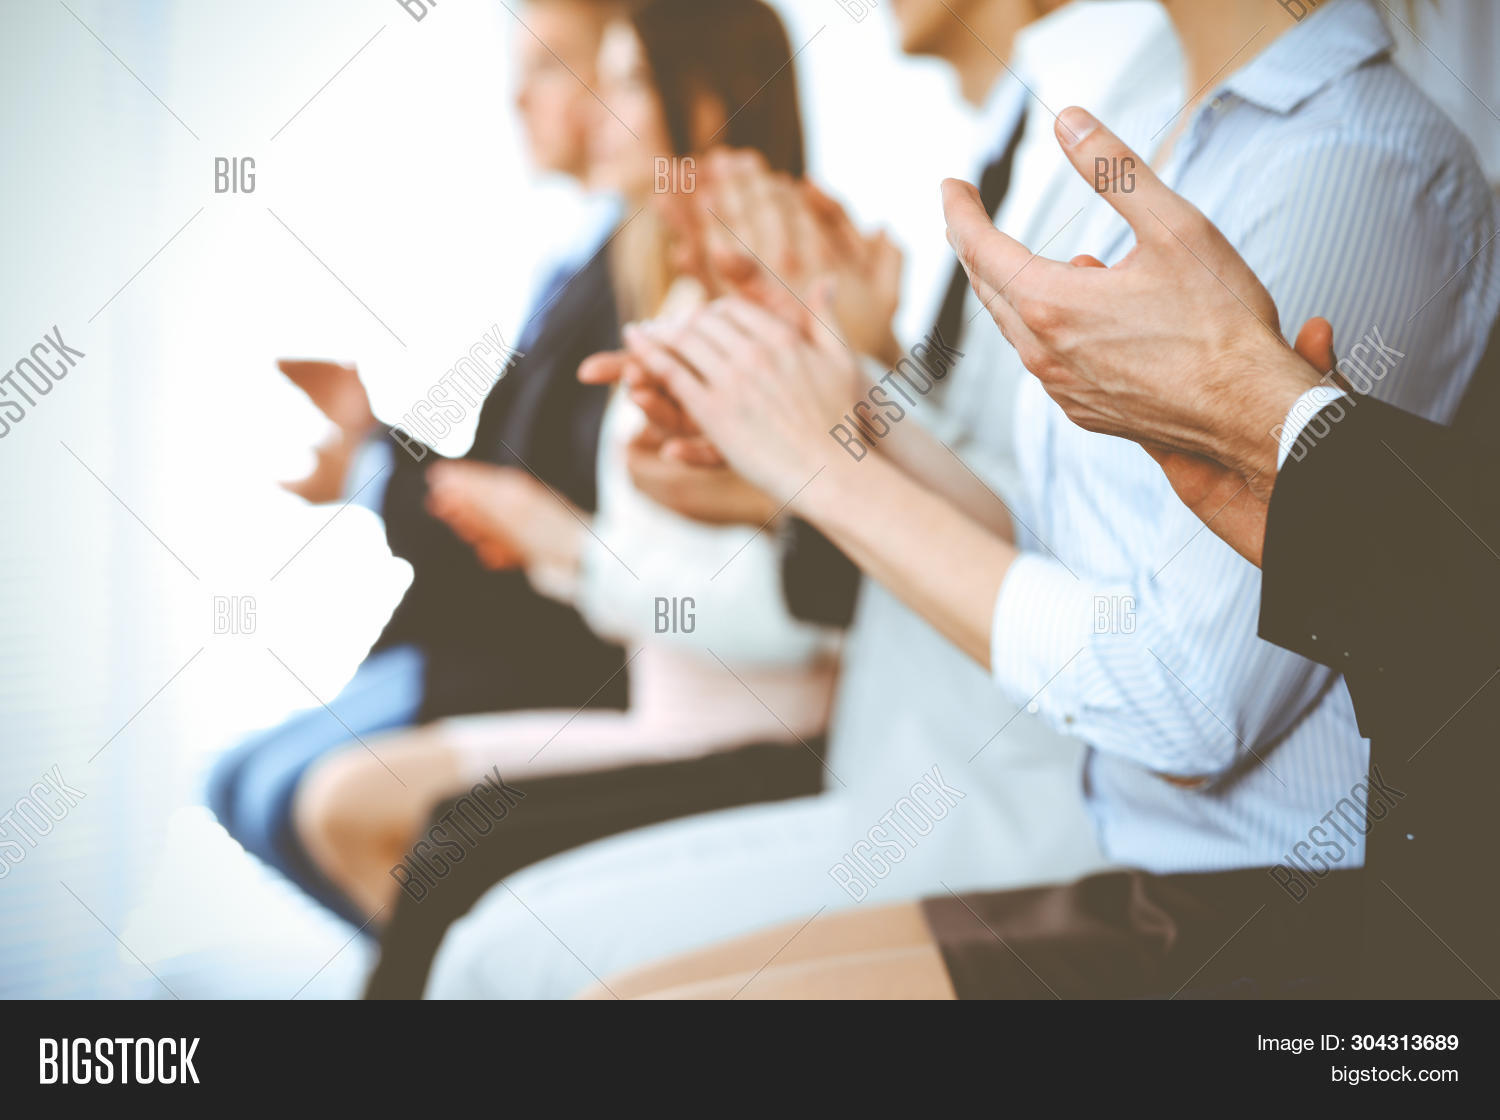 adult,applauding,applause,business,businessman,businesspeople,clapping,close-up,coaching,colleagues,communication,company,computer,concept,conference,cooperation,corporate,desk,discussing,discussion,diverse,executive,female,finance,group,hands,laptop,lawyers,listening,male,man,manager,meeting,men,modern,negotiation,occupation,office,people,presentation,professional,sitting,success,team,teamwork,training,using,woman,women,work